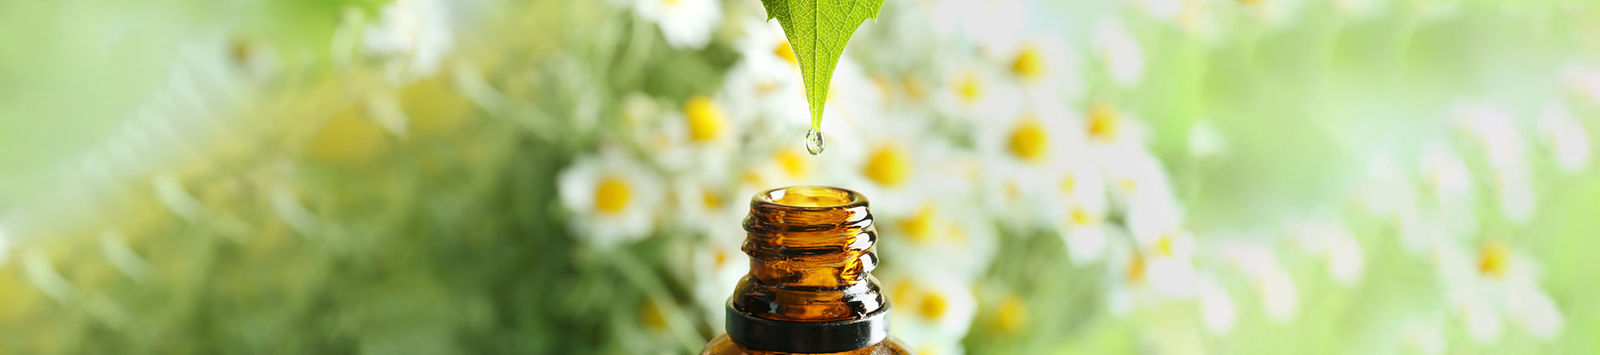 How Holistic Health Can Transform Your Life - Essential Oils